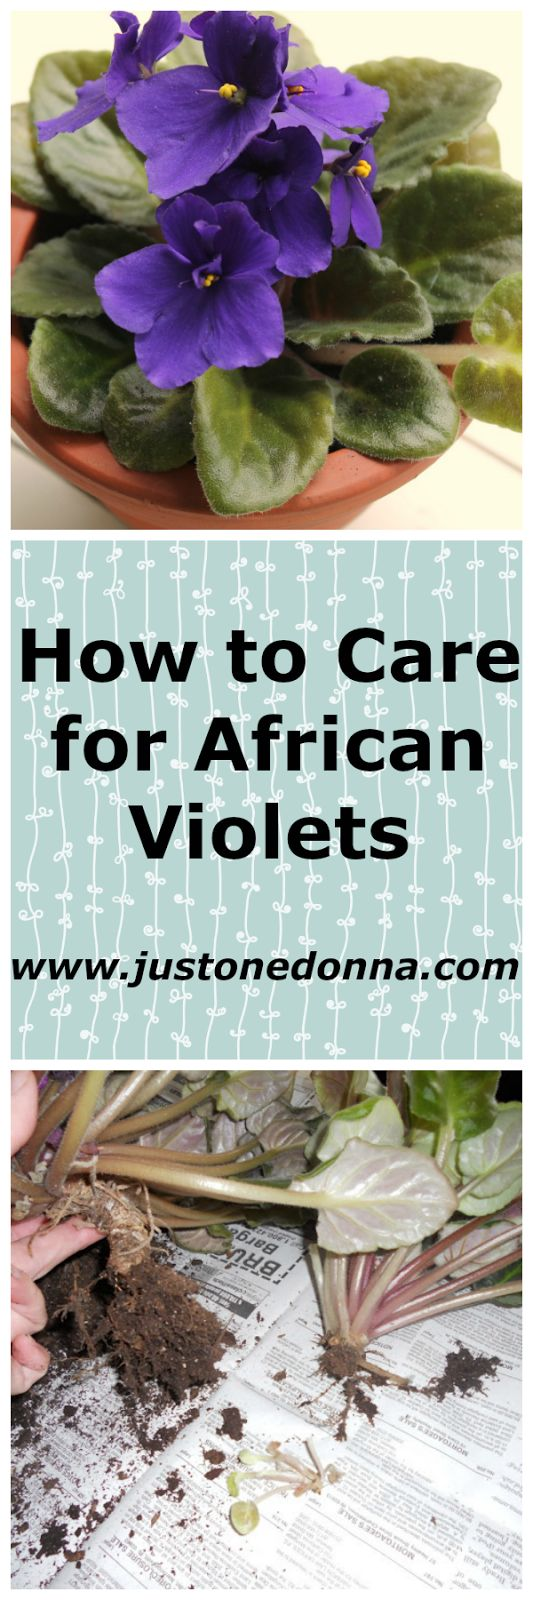 How to Care for African Violets | African violets are an easy houseplant with bursts of color.